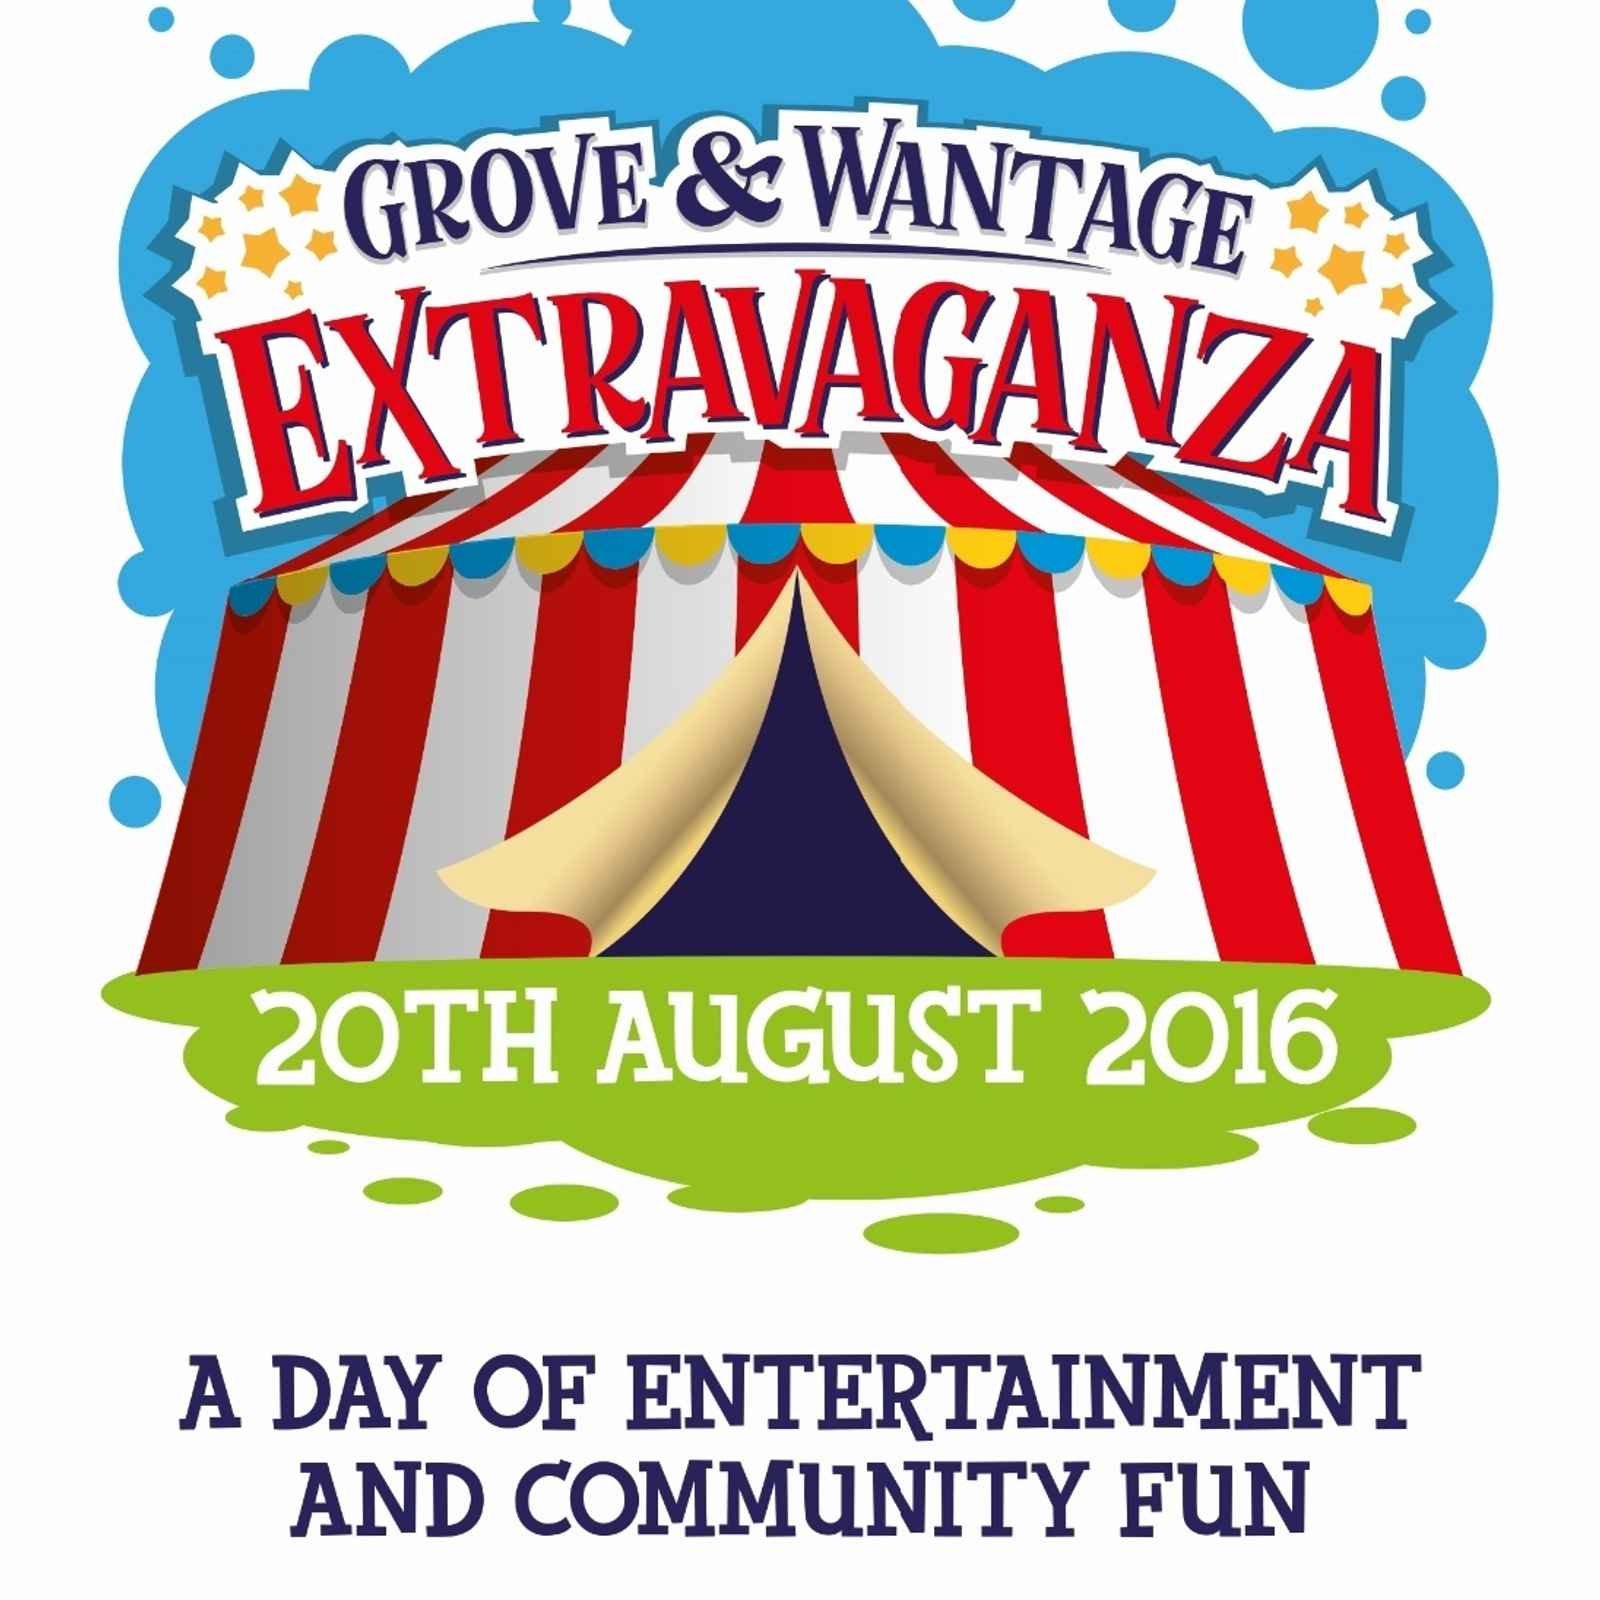 The Grove and Wantage Extravaganza - Updated.